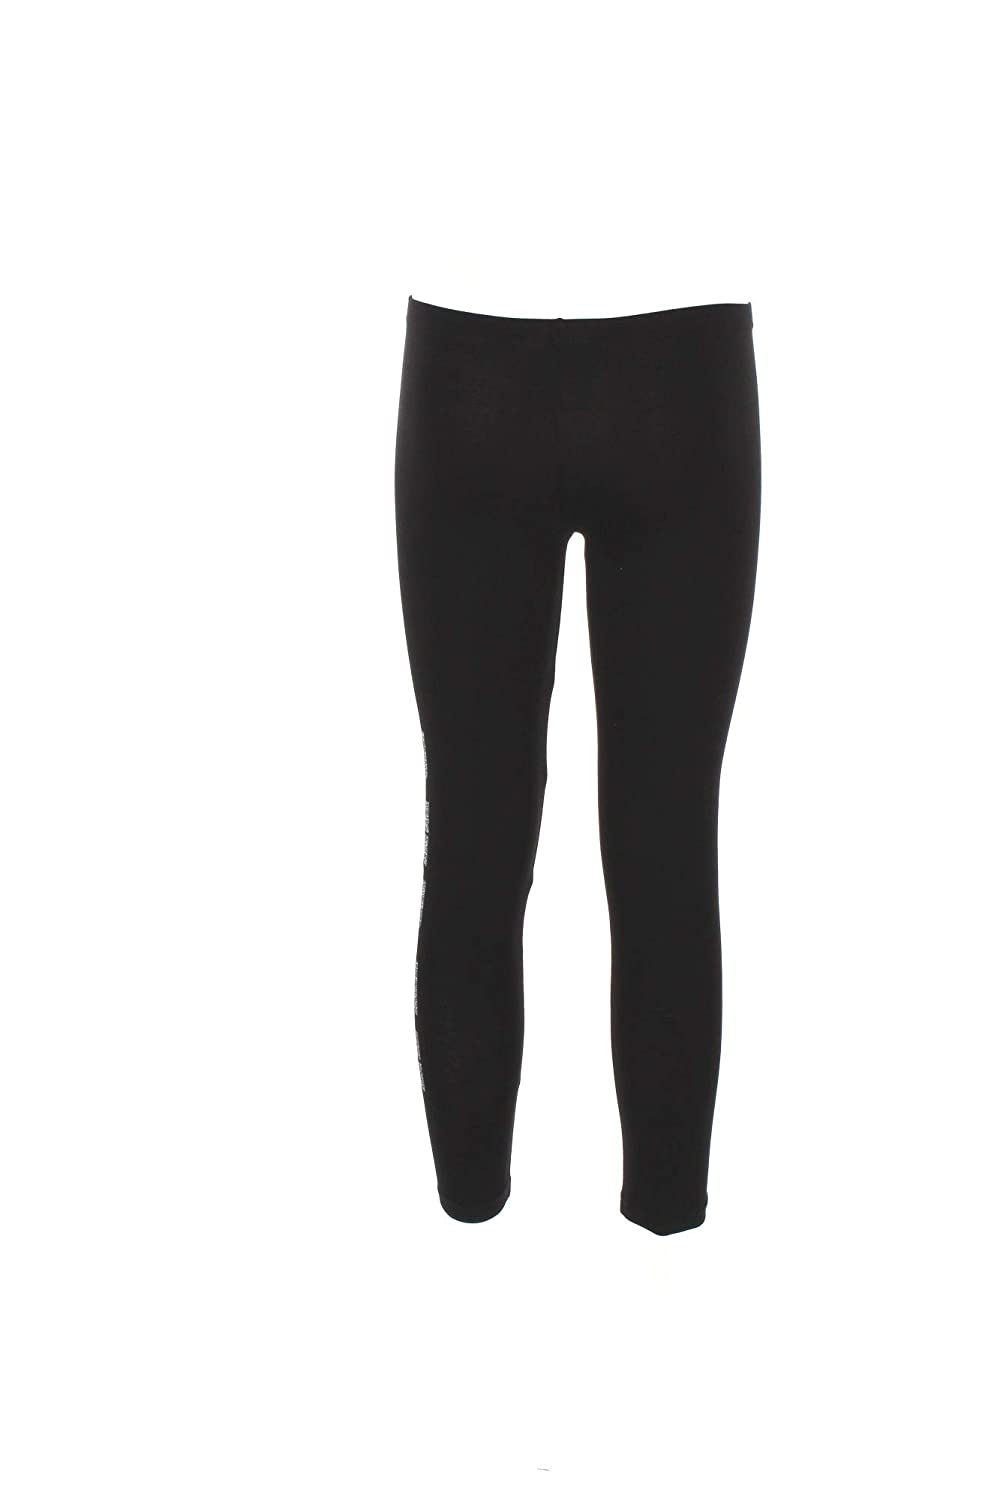 Pyrex Leggings 34239 Basic Glitter